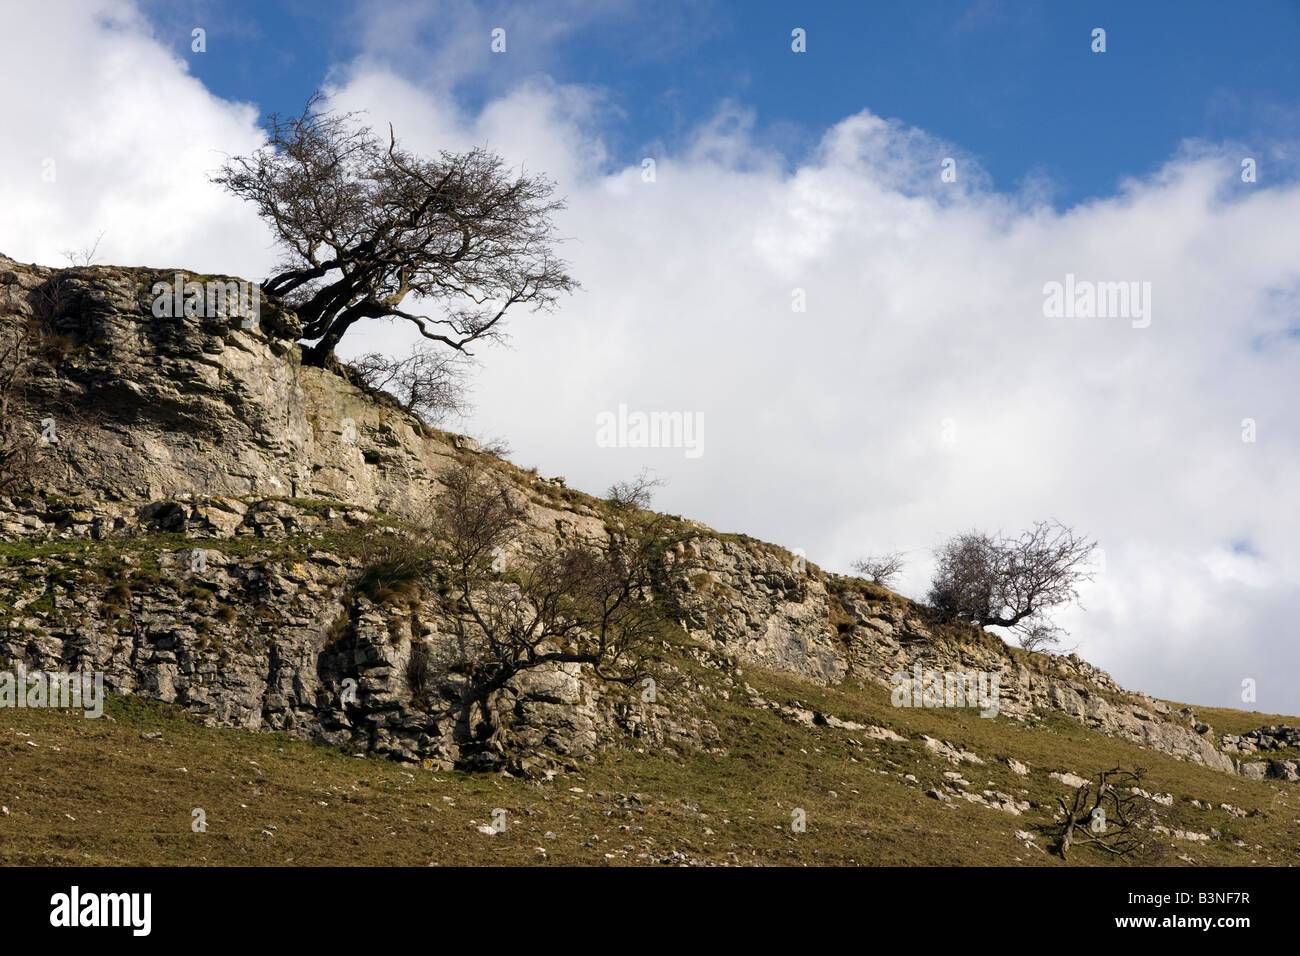 cressbrook dale landscape showing geological features rocks and clouds - Stock Image